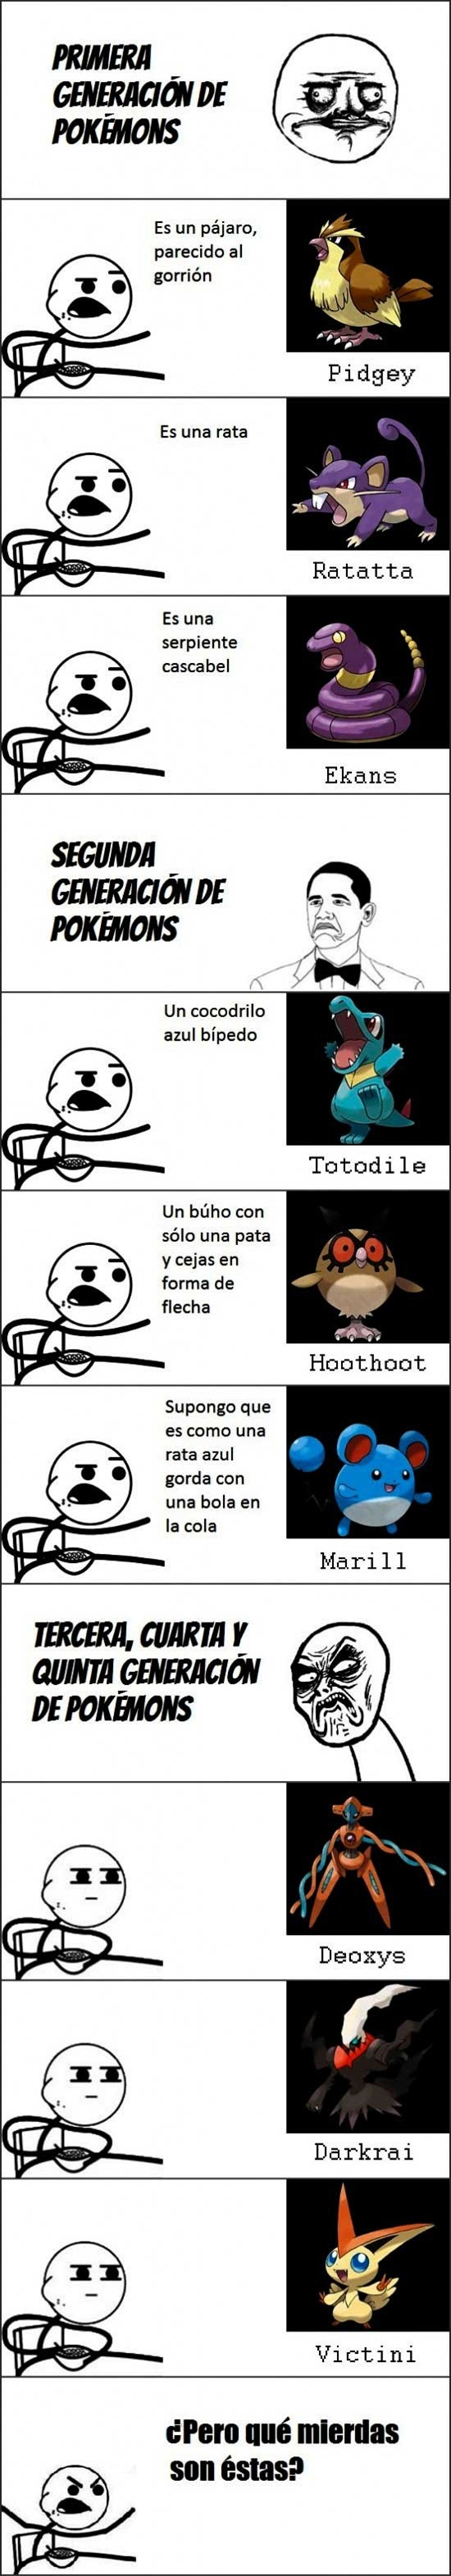 cereal_guy_generaciones_de_pokemon